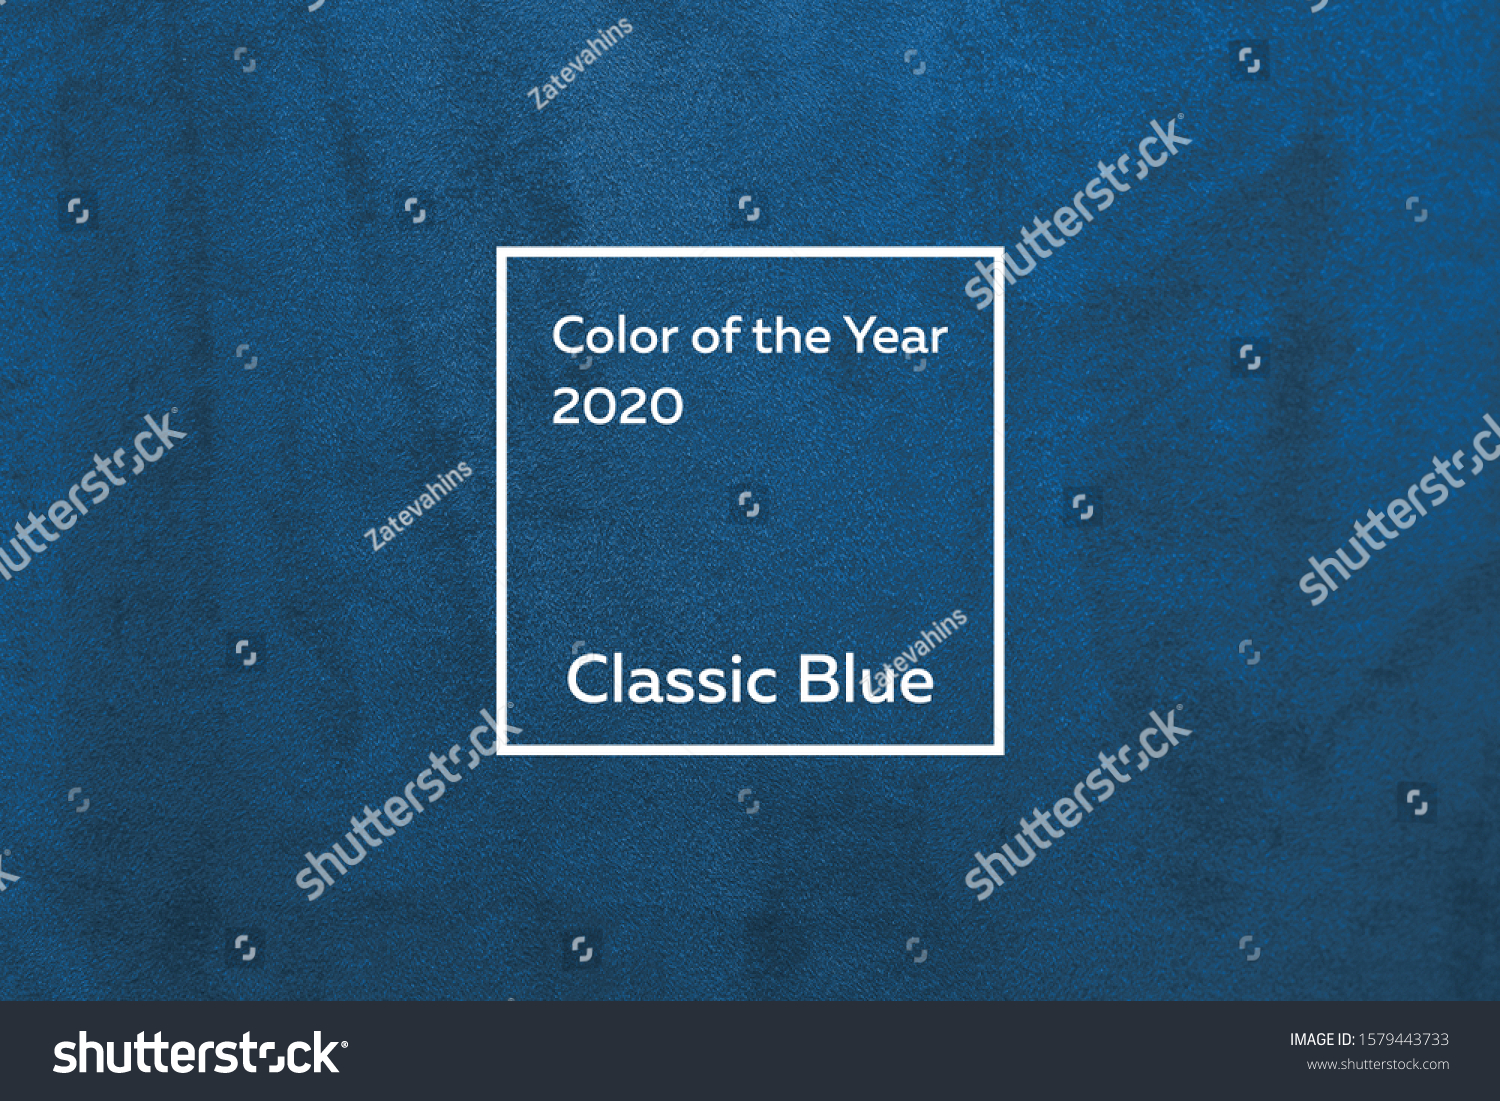 turquoise fabric with a nap pleated. Color of the year 2020 Classic Blue pantone #1579443733